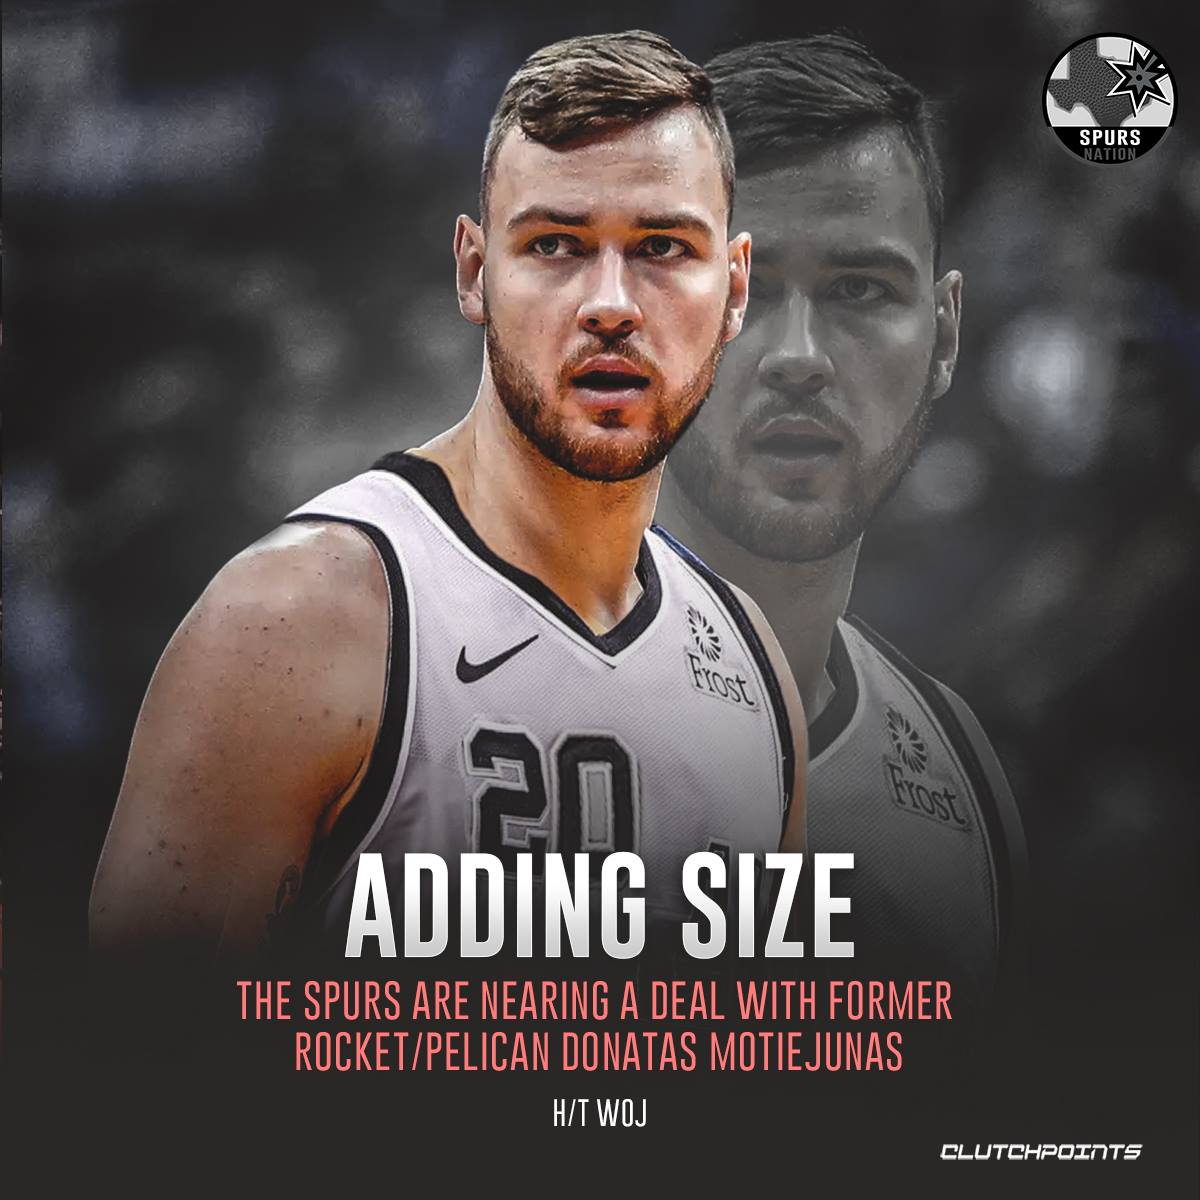 RT @SpursNationCP: The Spurs are adding some much-needed size in the frontcourt.  #Spurs #Gospursgo https://t.co/U7aVQSdIv3